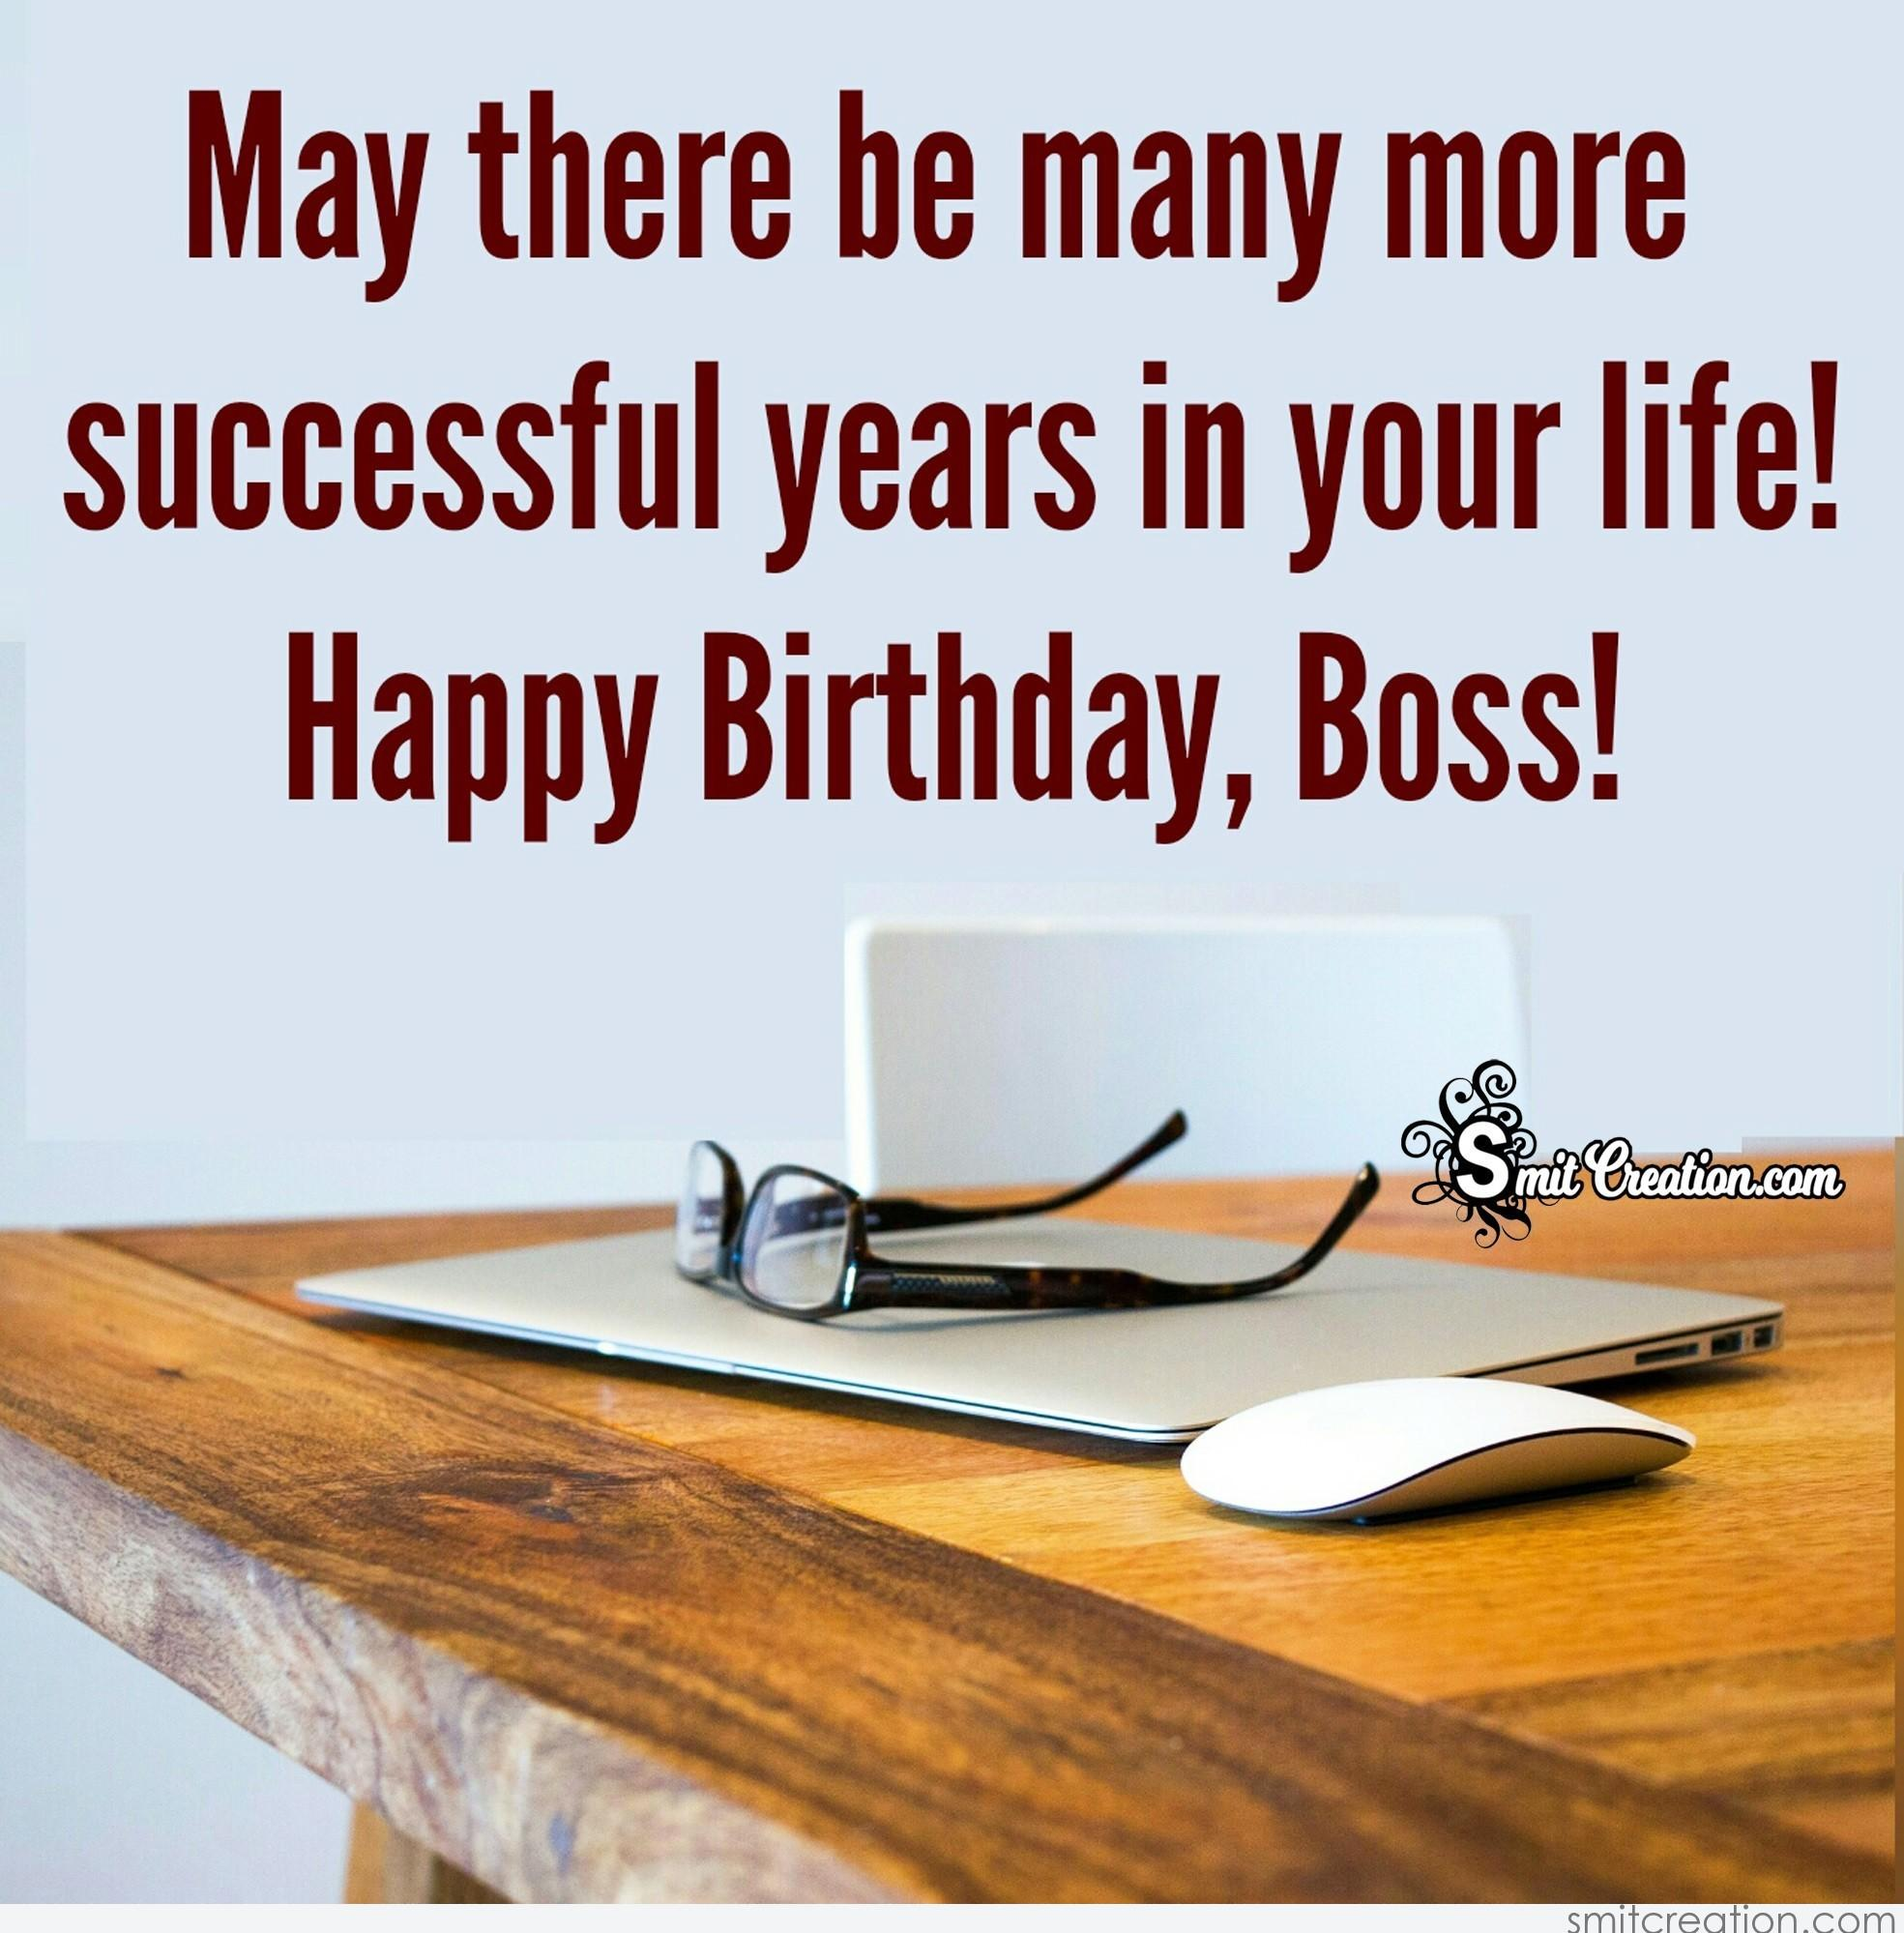 Birthday Wishes for Boss Pictures and Graphics ...